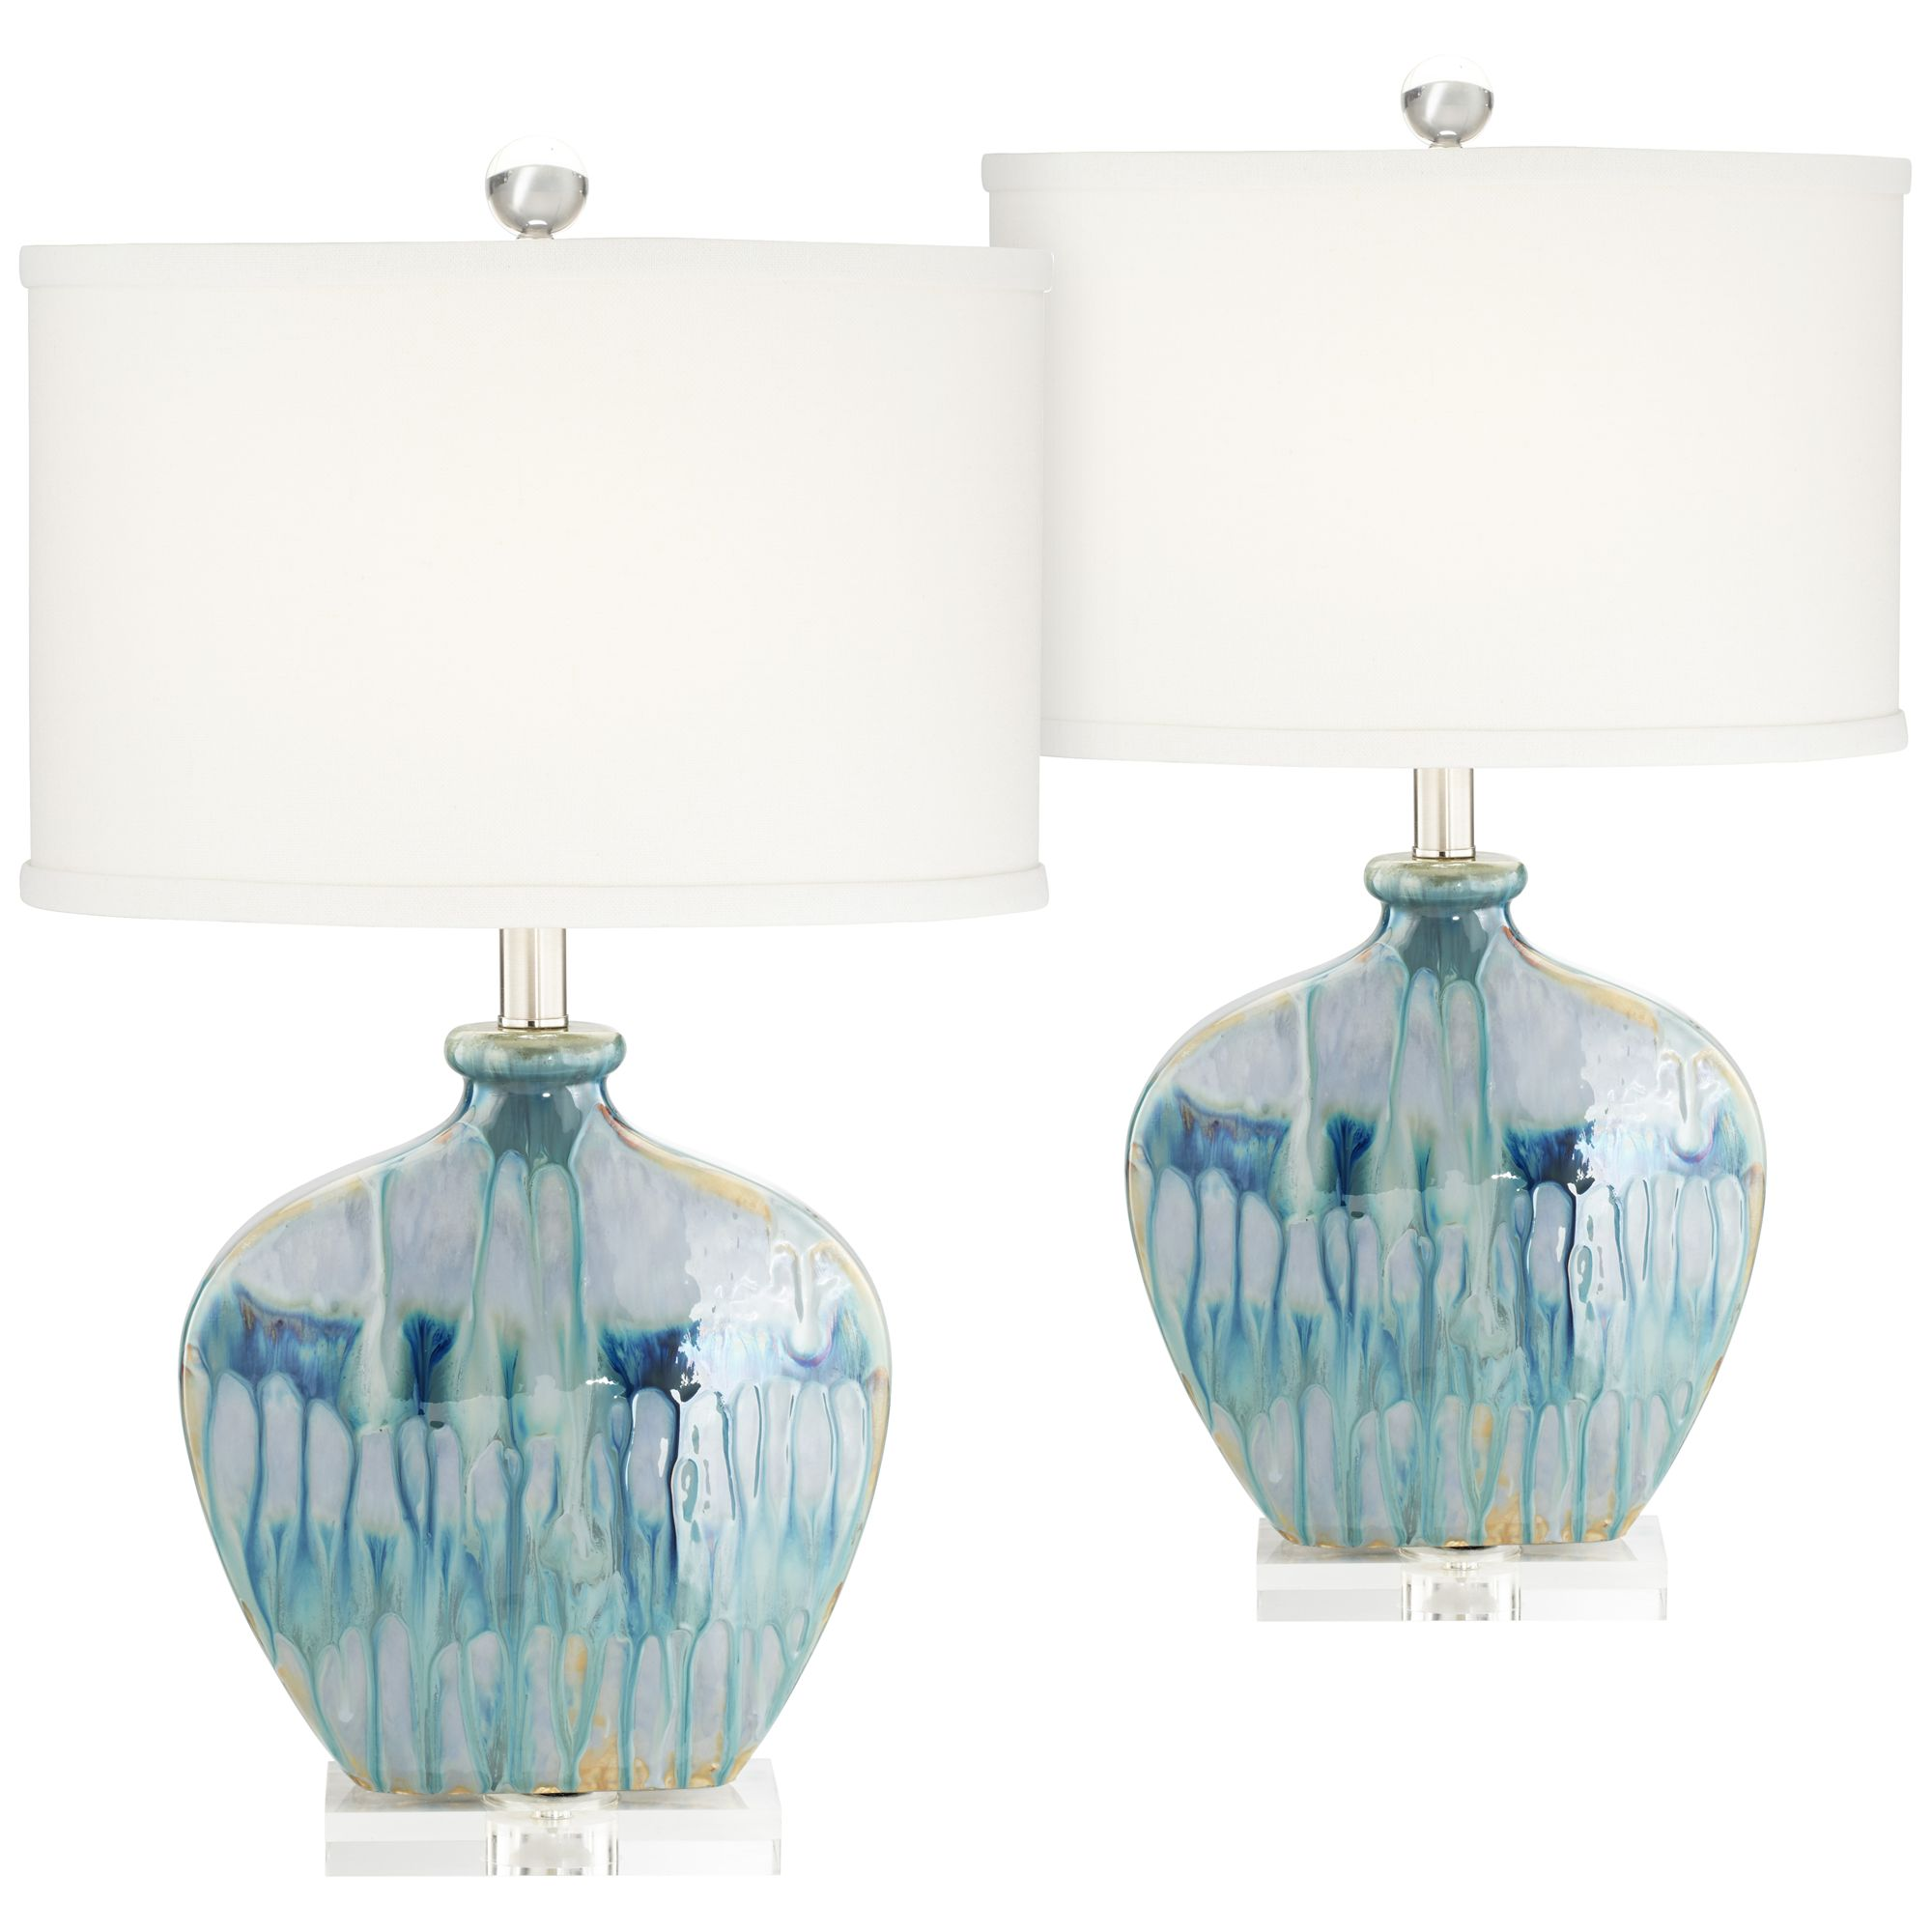 Possini euro design coastal table lamps set of 2 ceramic blue drip off white oval shade for living room family bedroom office